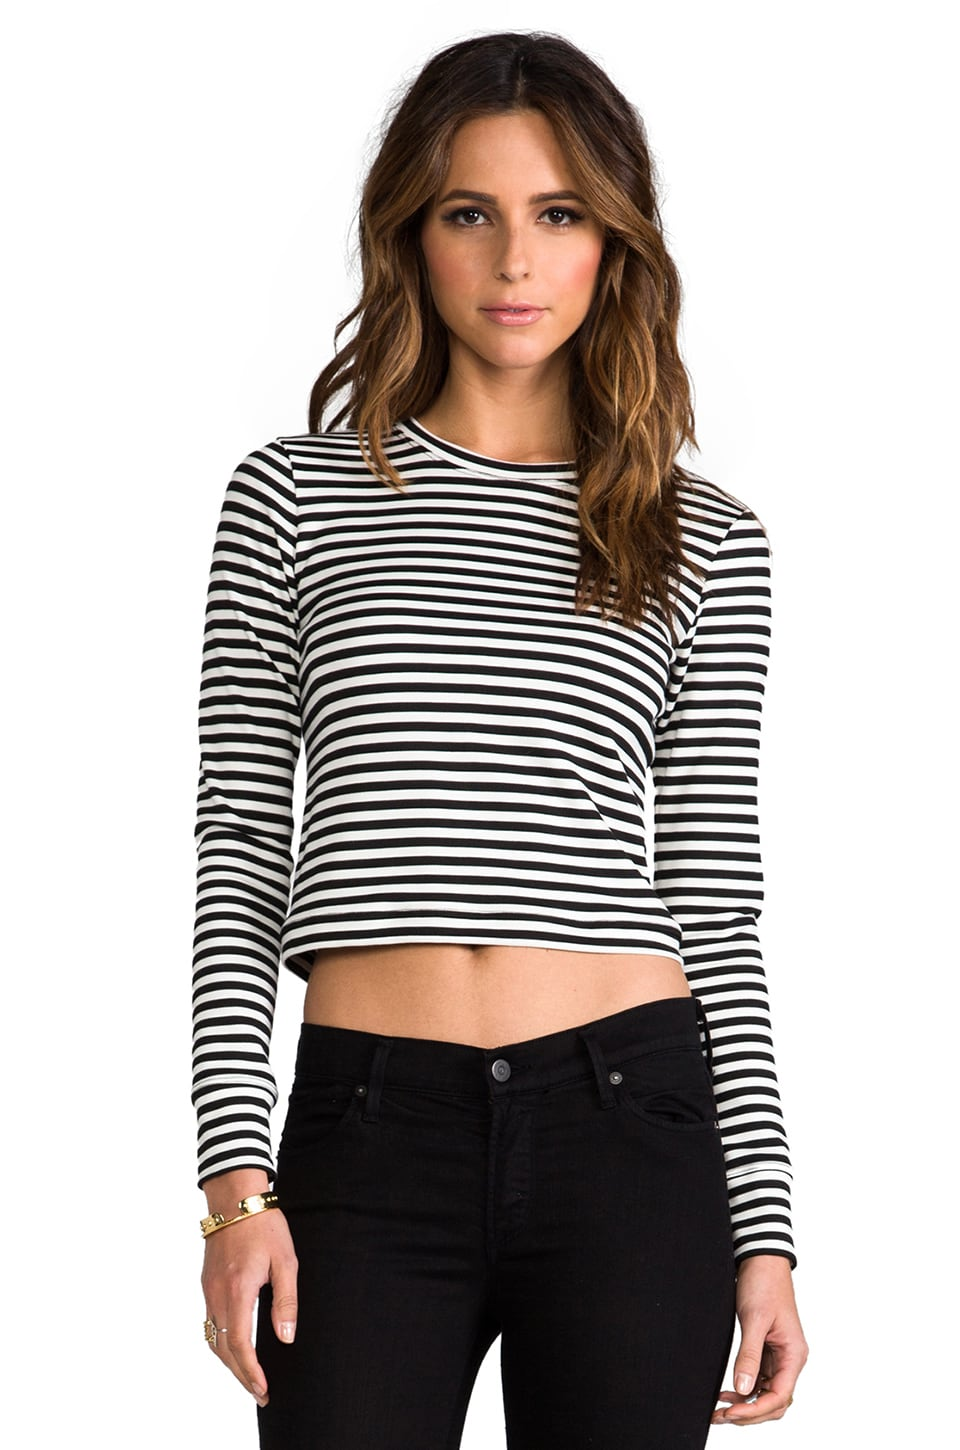 Whetherly Audrey Stripe Long Sleeve Tee in Black/White